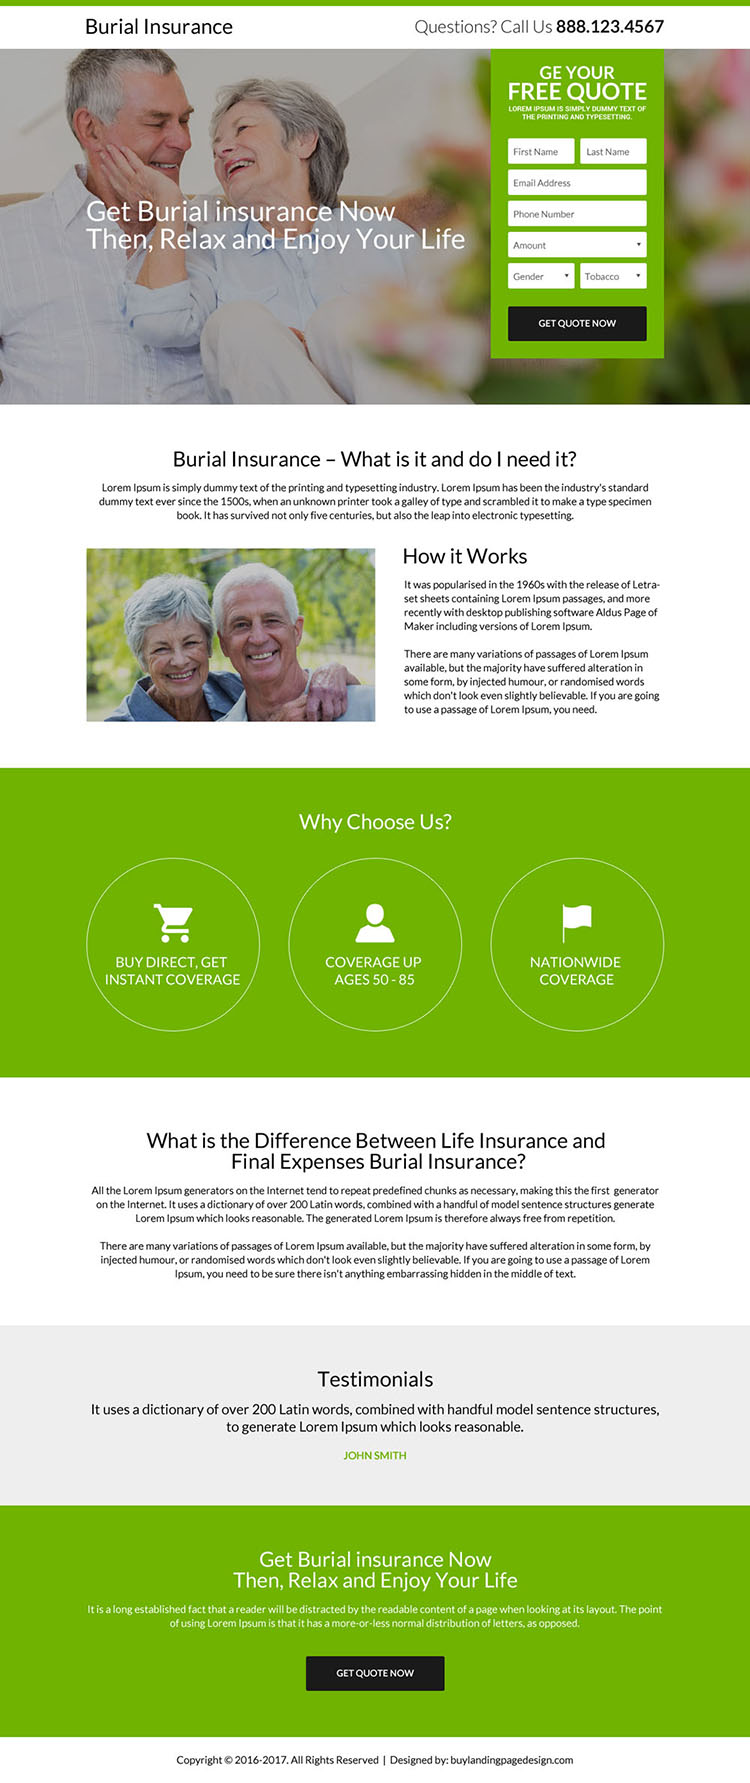 burial insurance phone call and email capturing responsive landing page